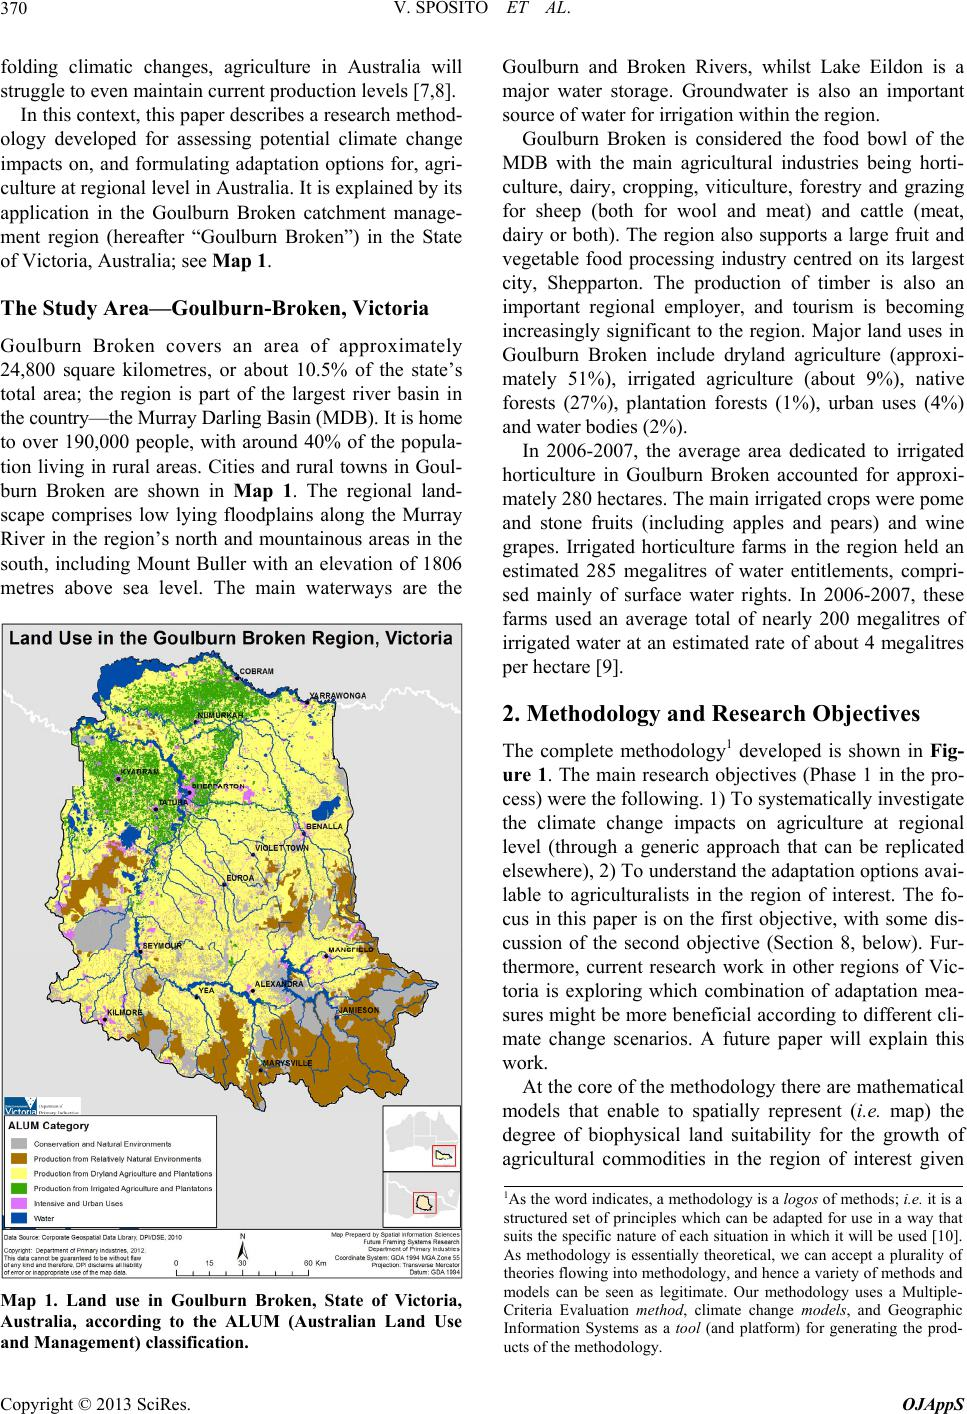 gis and australian agriculture essay